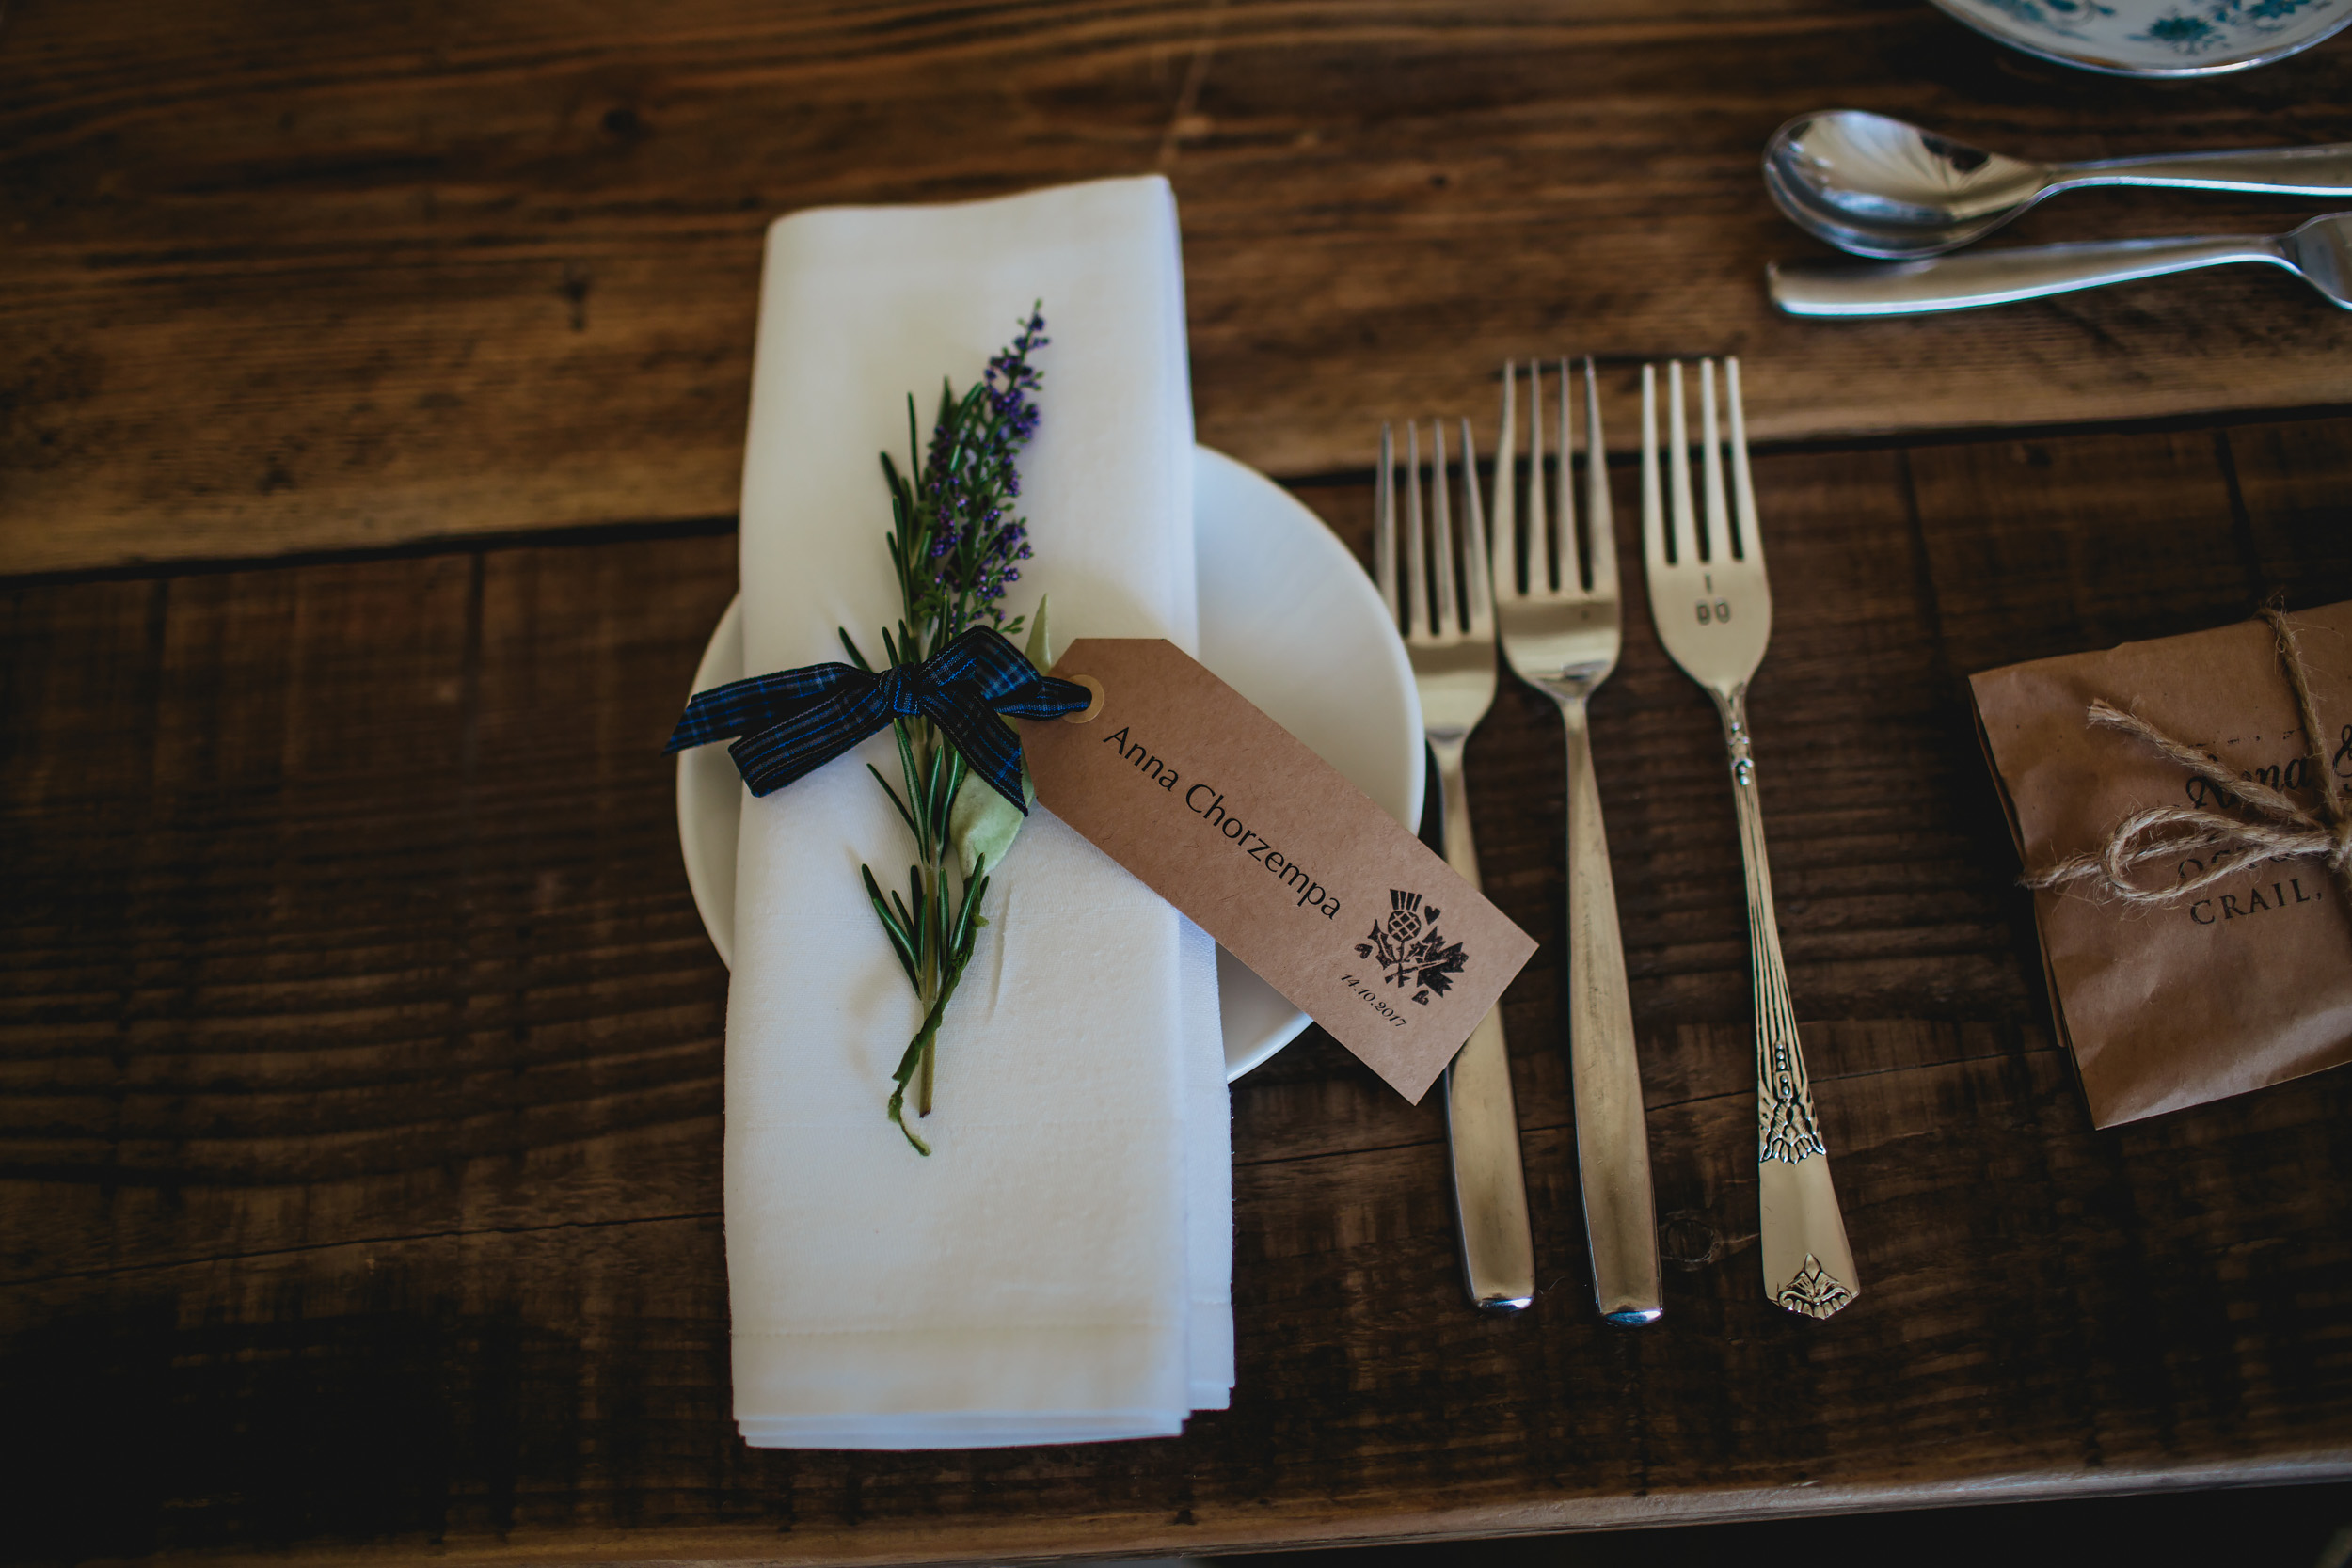 Table decorations with heather at Cow Shed Crail